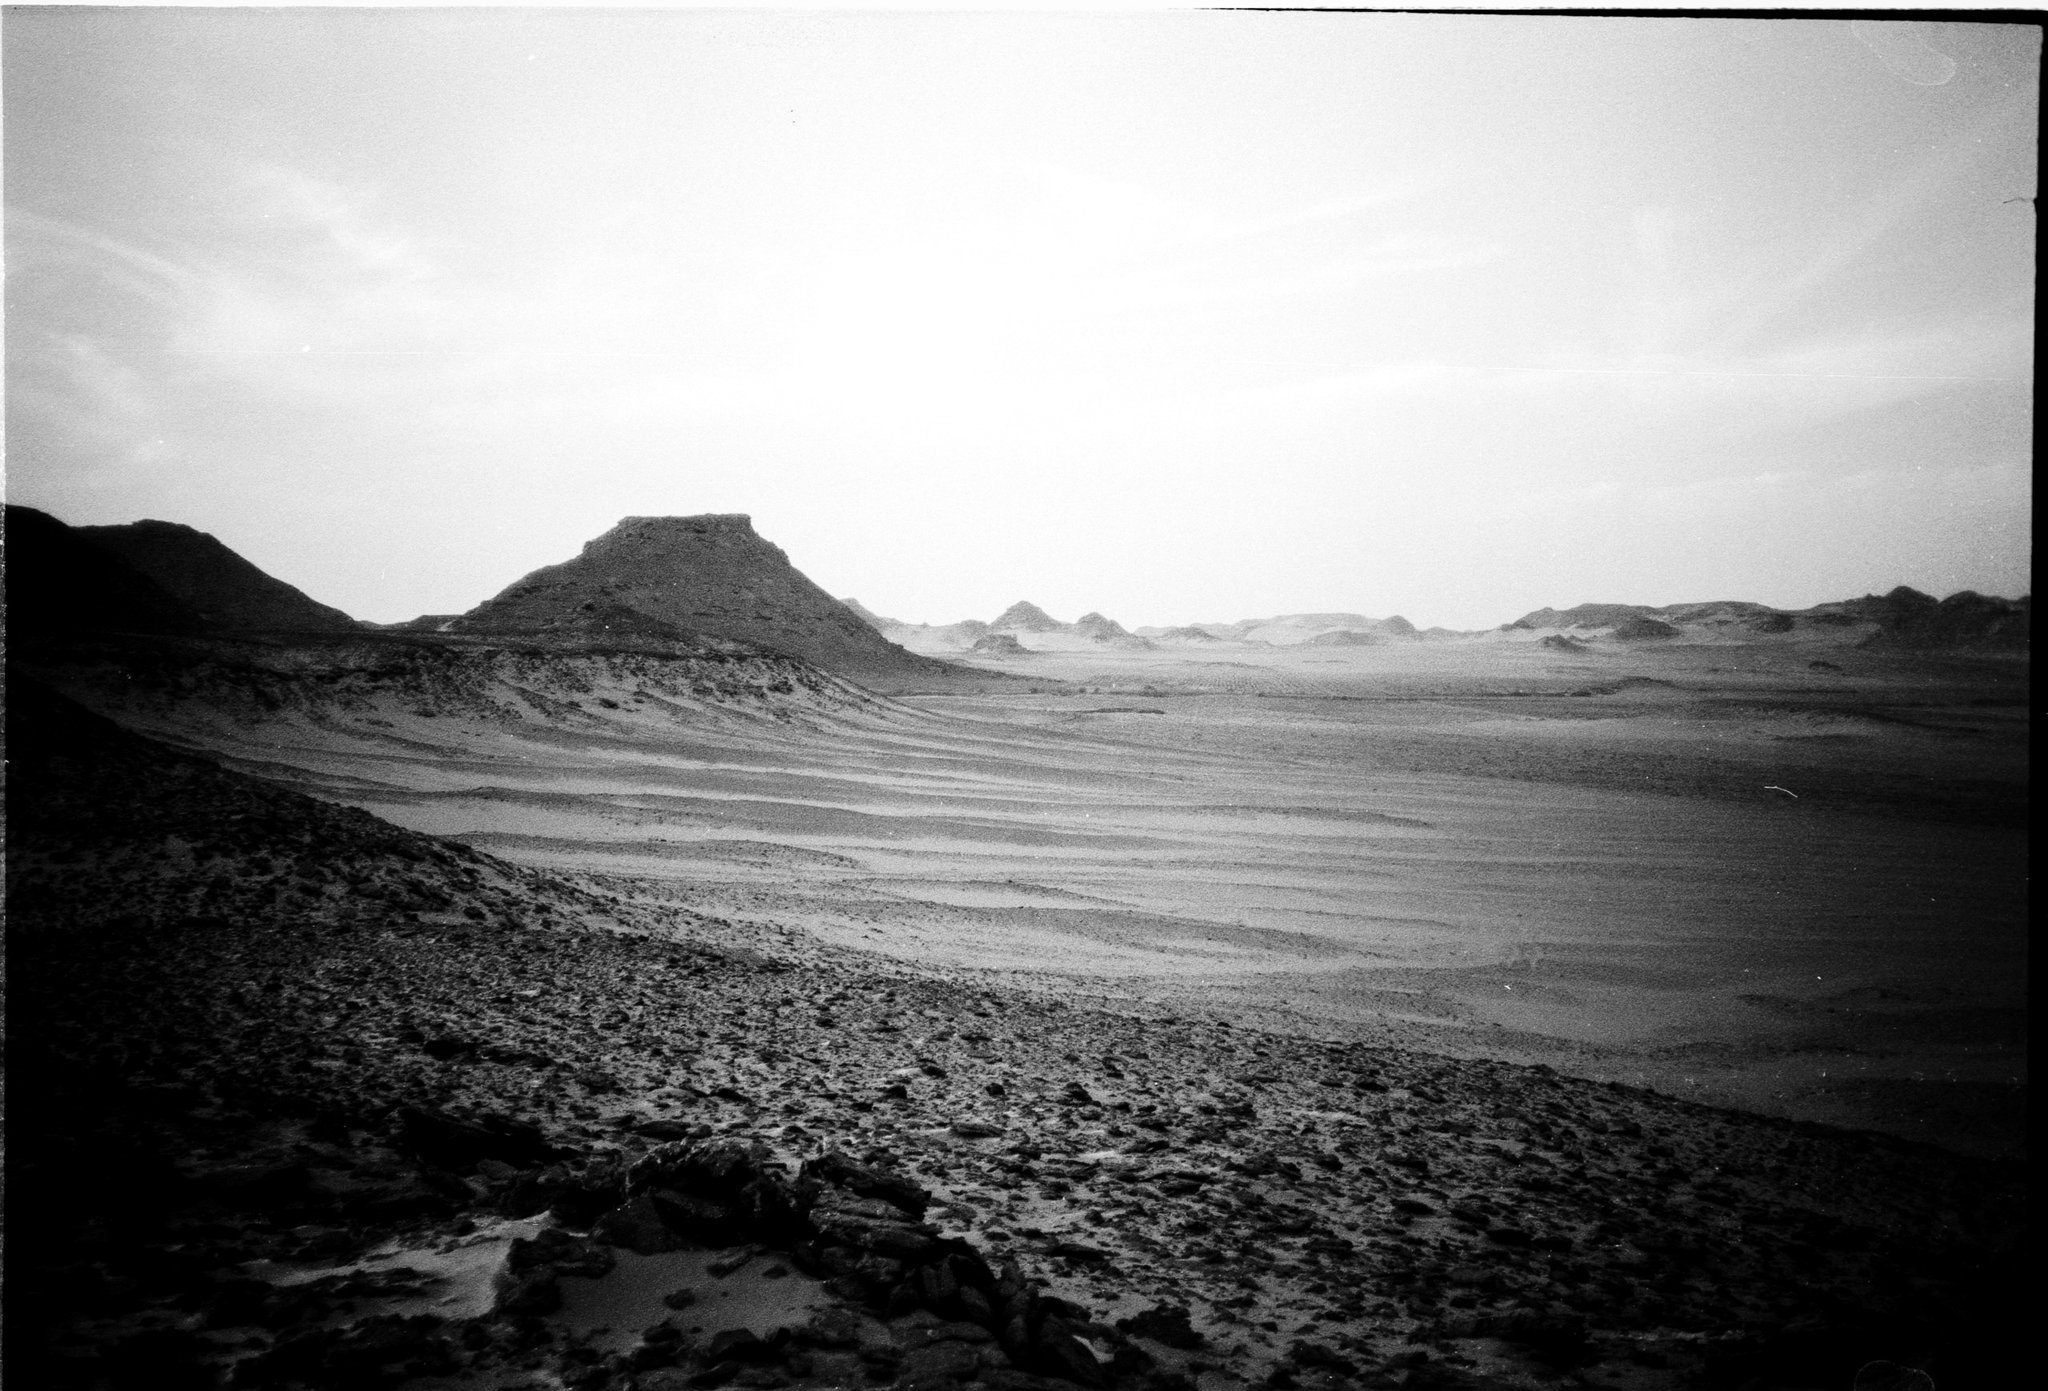 @Virgil_Roger Replying to @ILFORDPhoto #ilfordphoto #fridayfavourites #alienfilm in the Egyptian deserts 3/3 #panF at iso 50